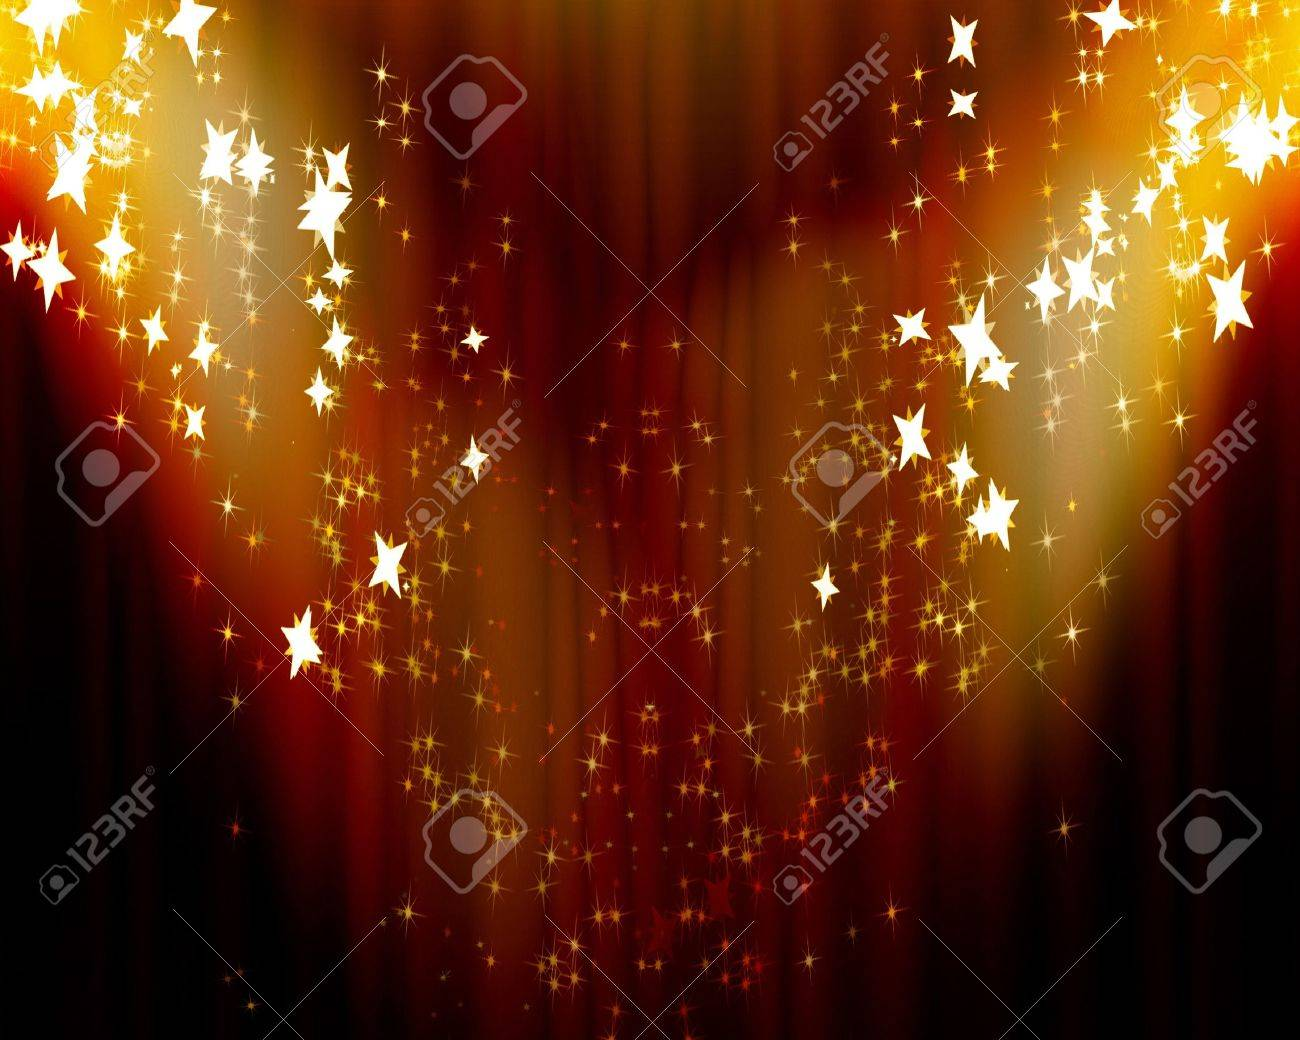 Curtain background with spotlights and some glitters on it Stock Photo - 4048364